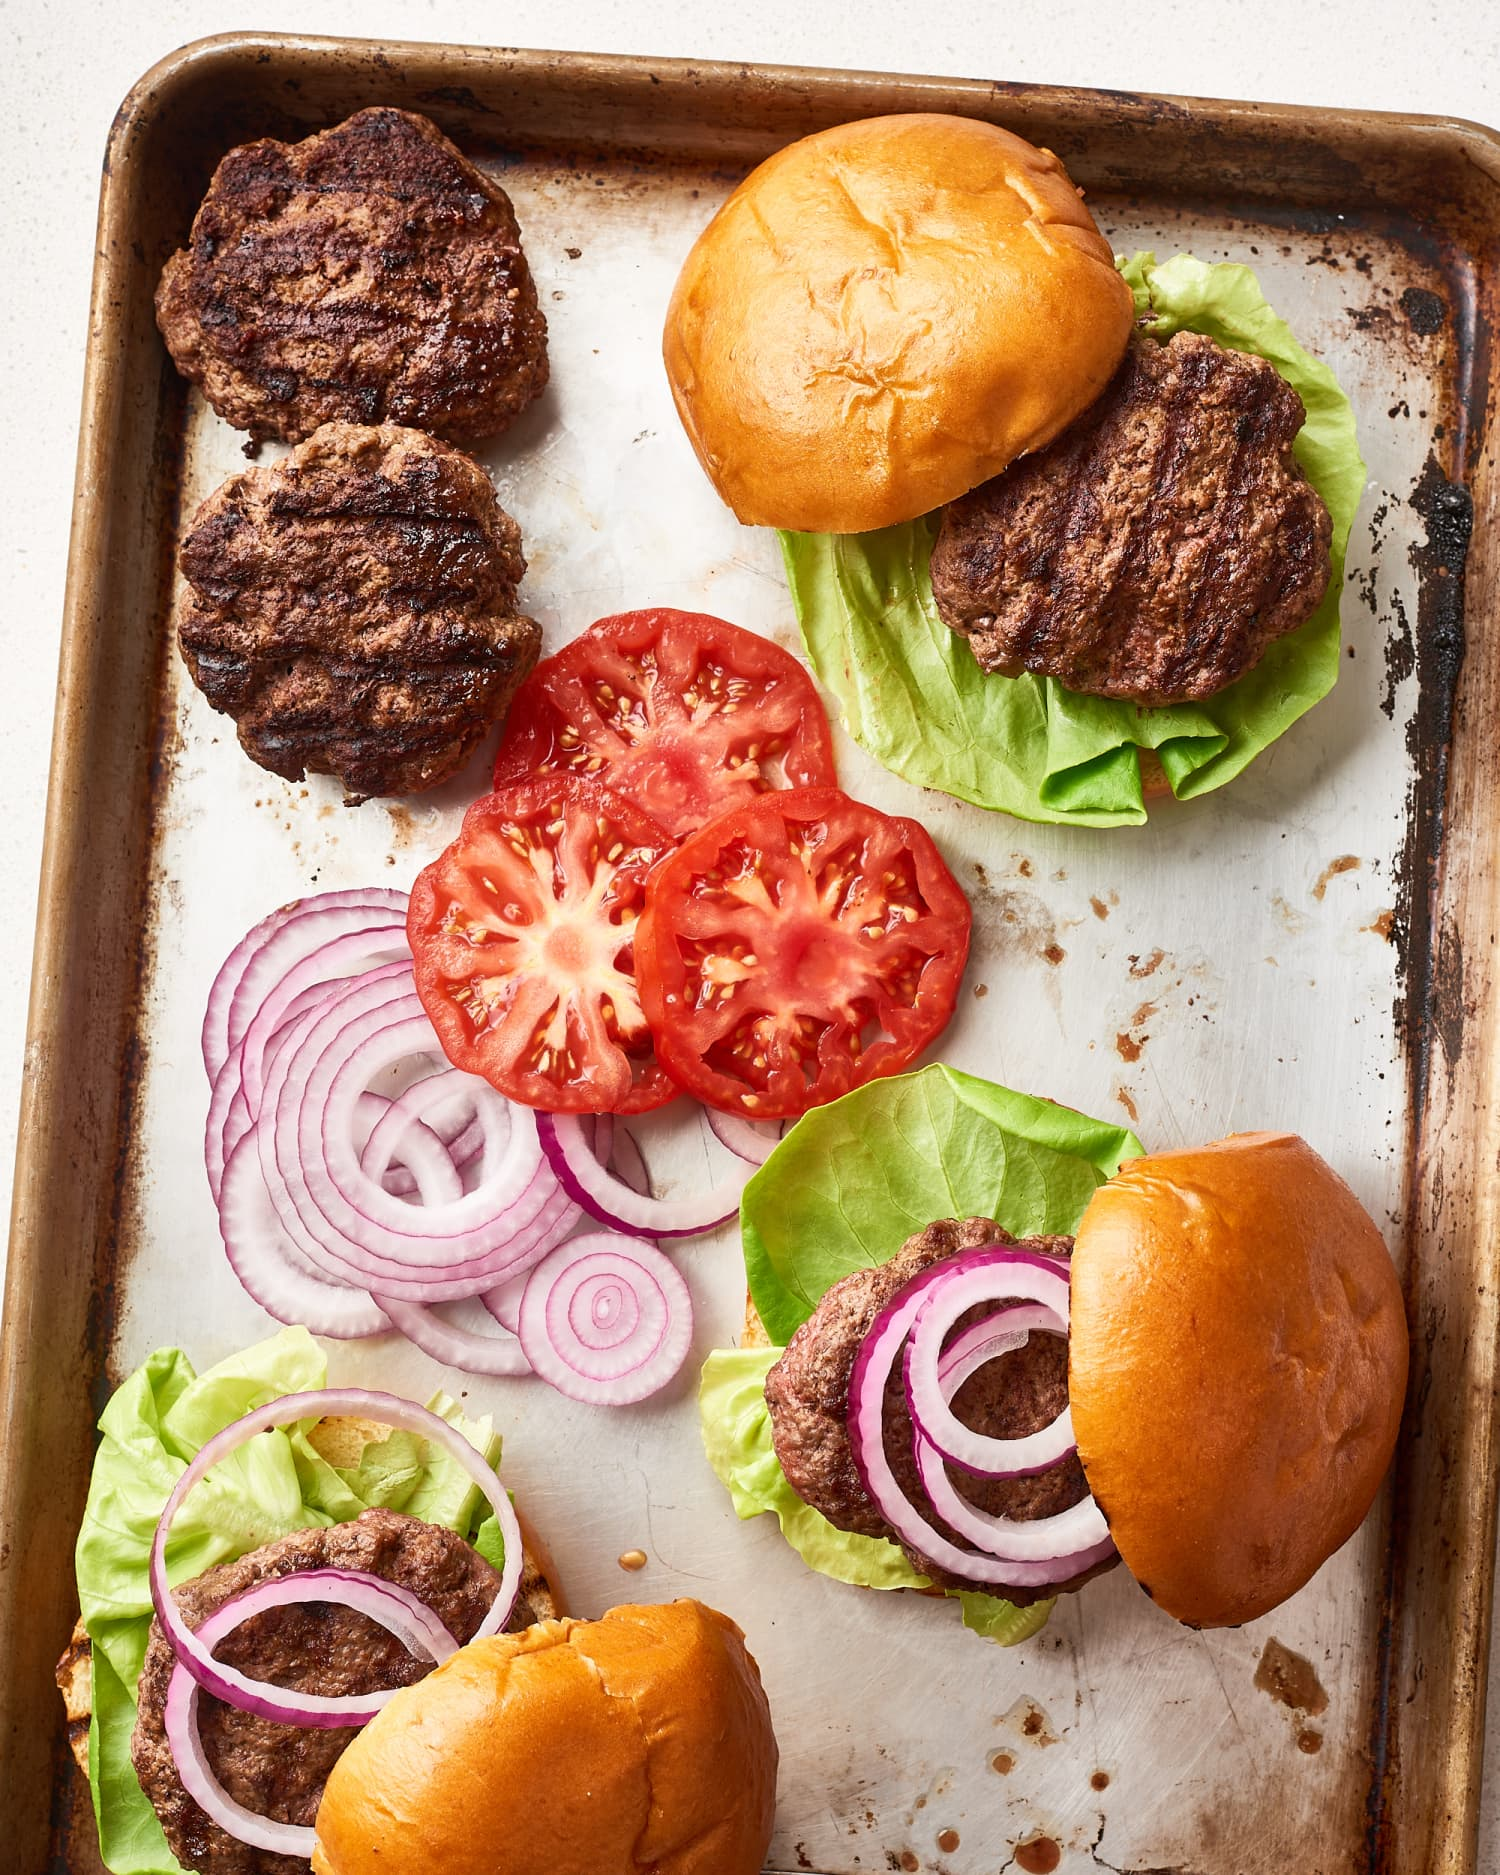 The Secret to Grilling Burgers That Are Always Tender and Juicy